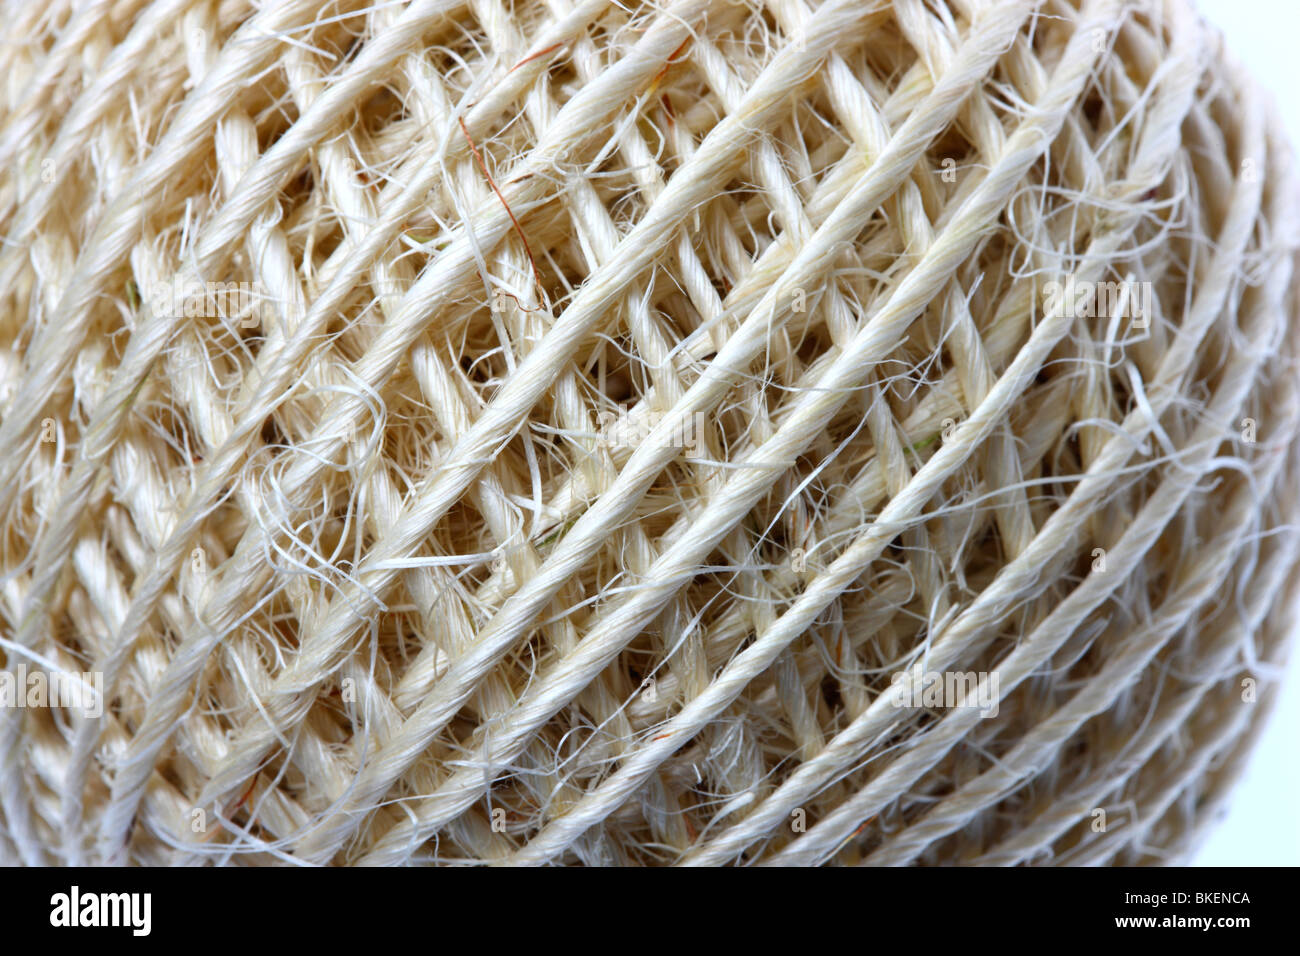 package cord, coiled to a role. - Stock Image